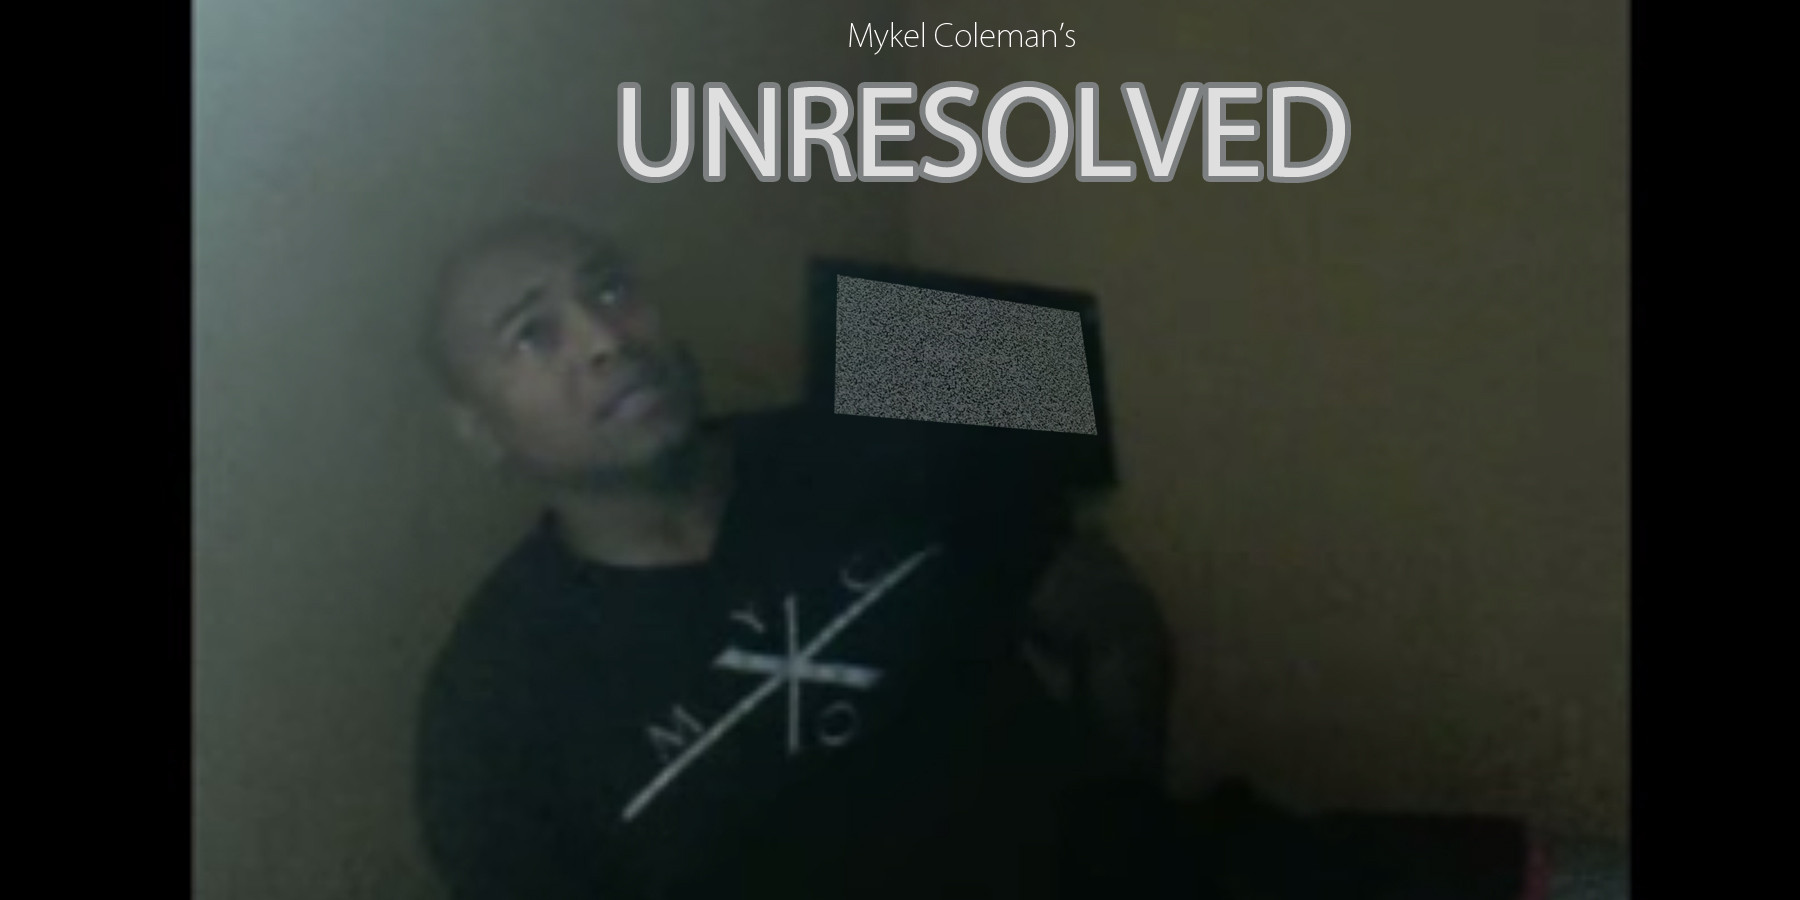 UNRESOLVED THRILLER MOVIE - Coming Soon to MCSTV